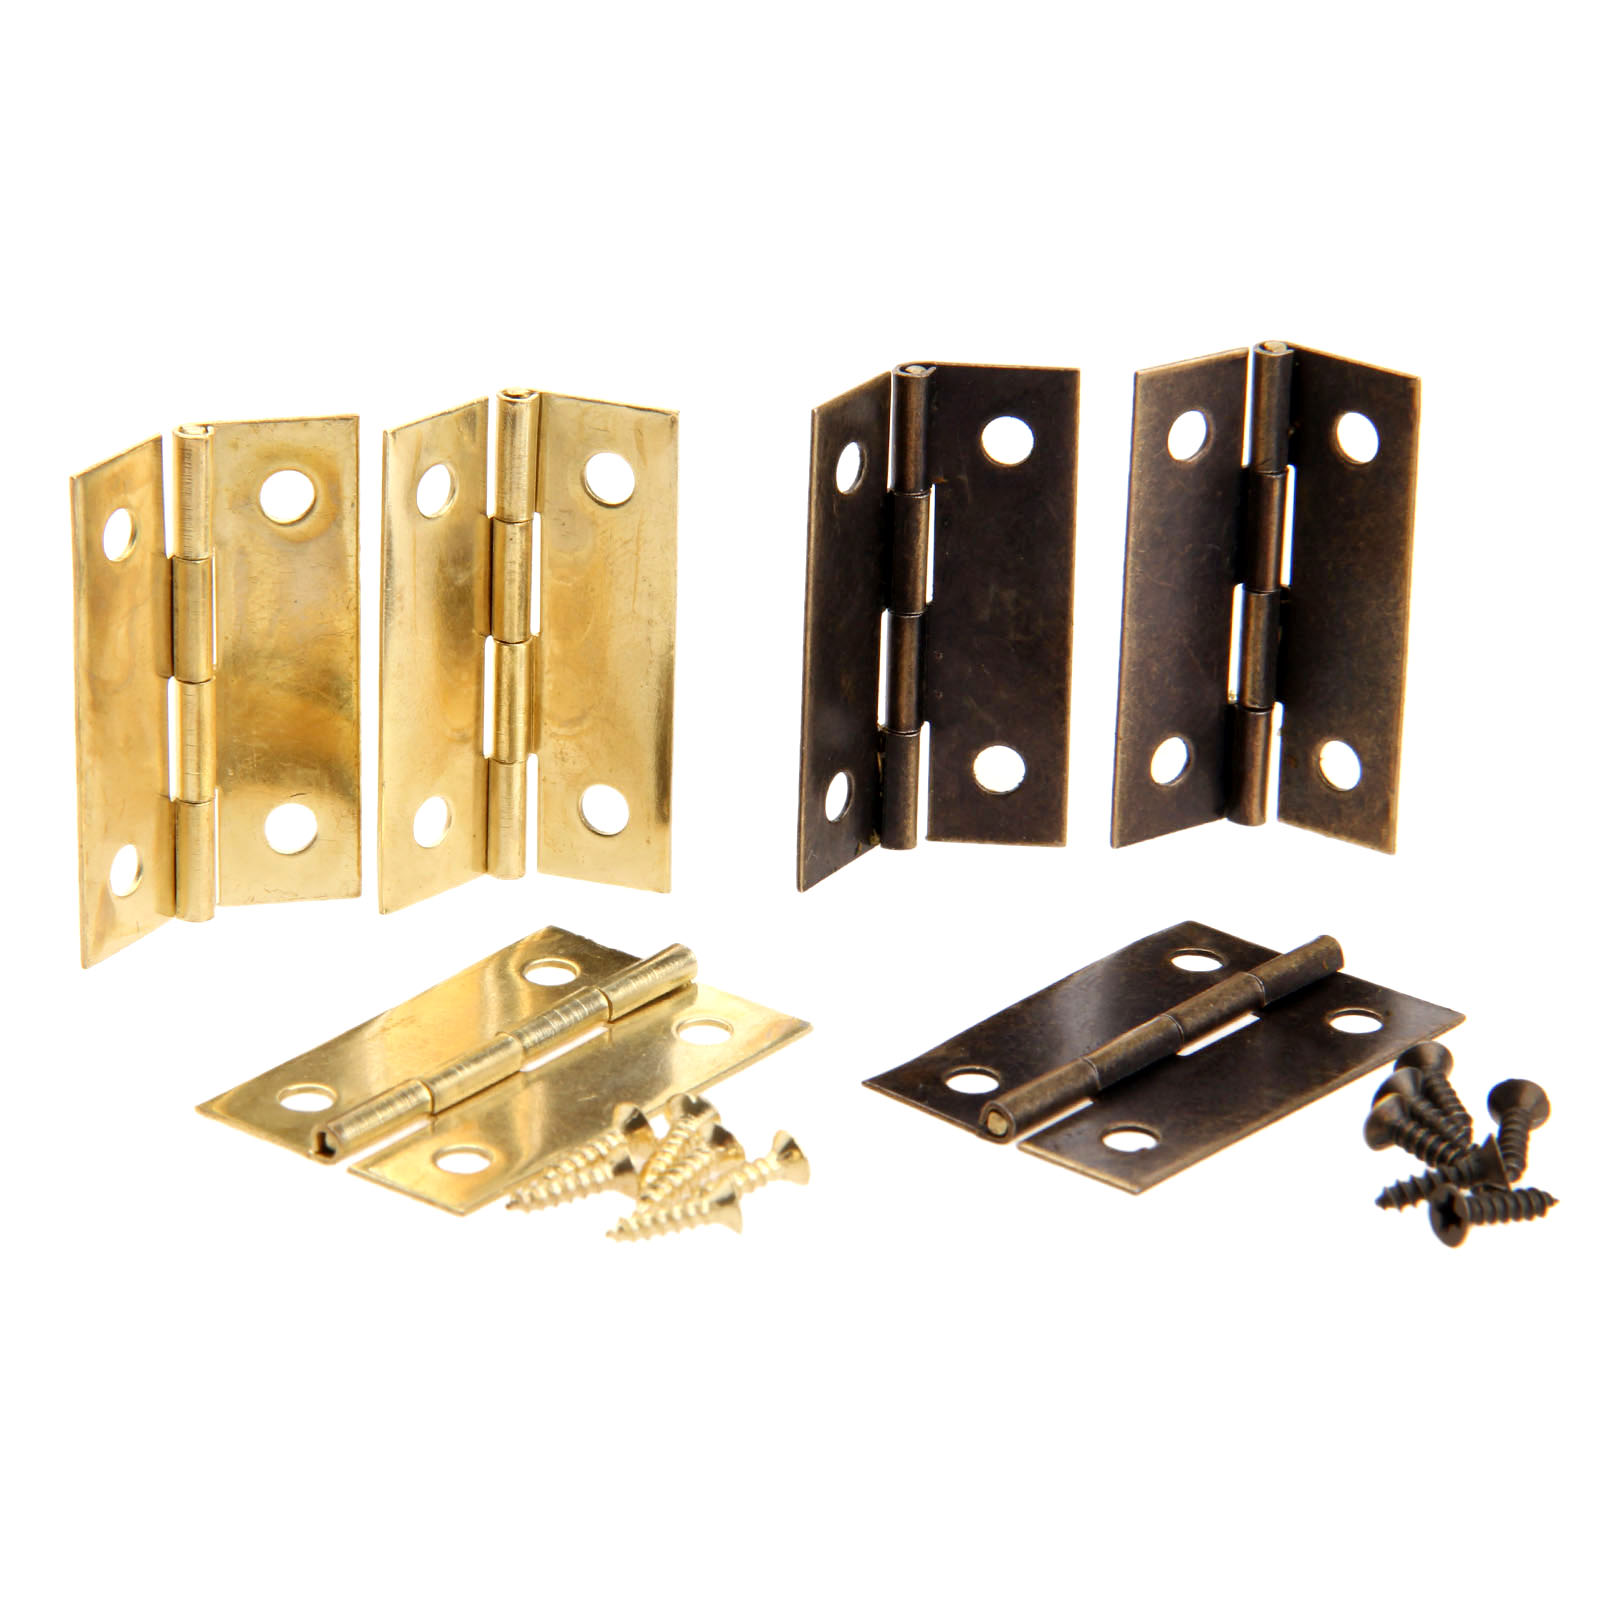 4Pcs Antique Bronze/Gold Cabinet Hinges Furniture Accessories Wood Boxes Decorative Hinge Furniture Fittings For Cabinet 34x22mm nervilamp 710 2a gold bronze